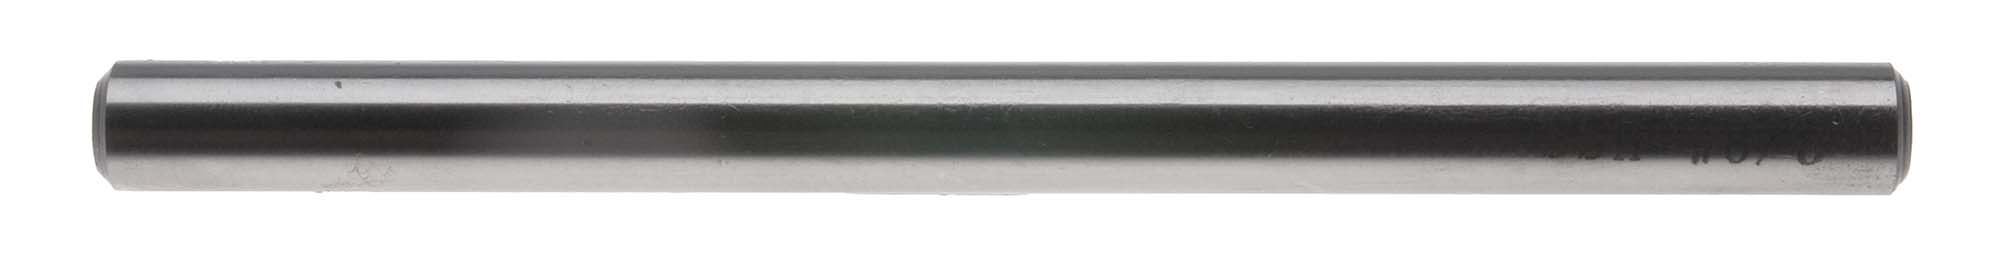 "U (.368"") Jobber Length Drill Blank, High Speed Steel"